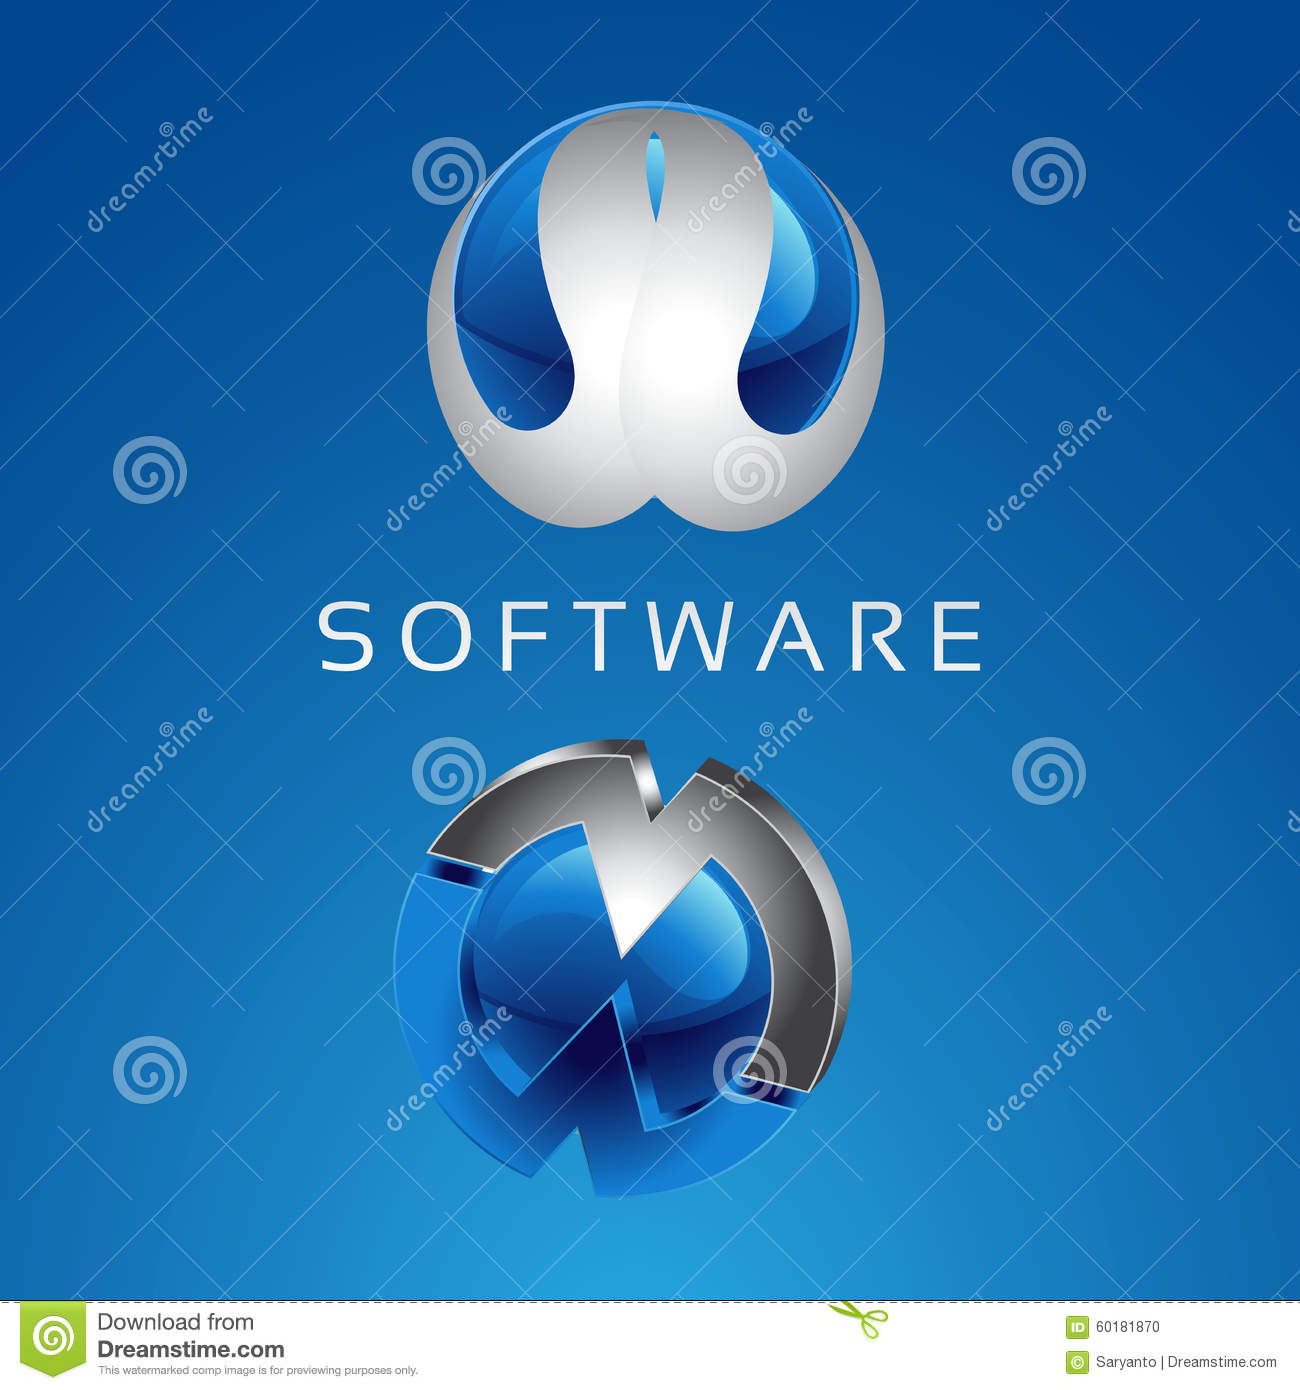 Software Stock Vector Image 60181870: vector image software